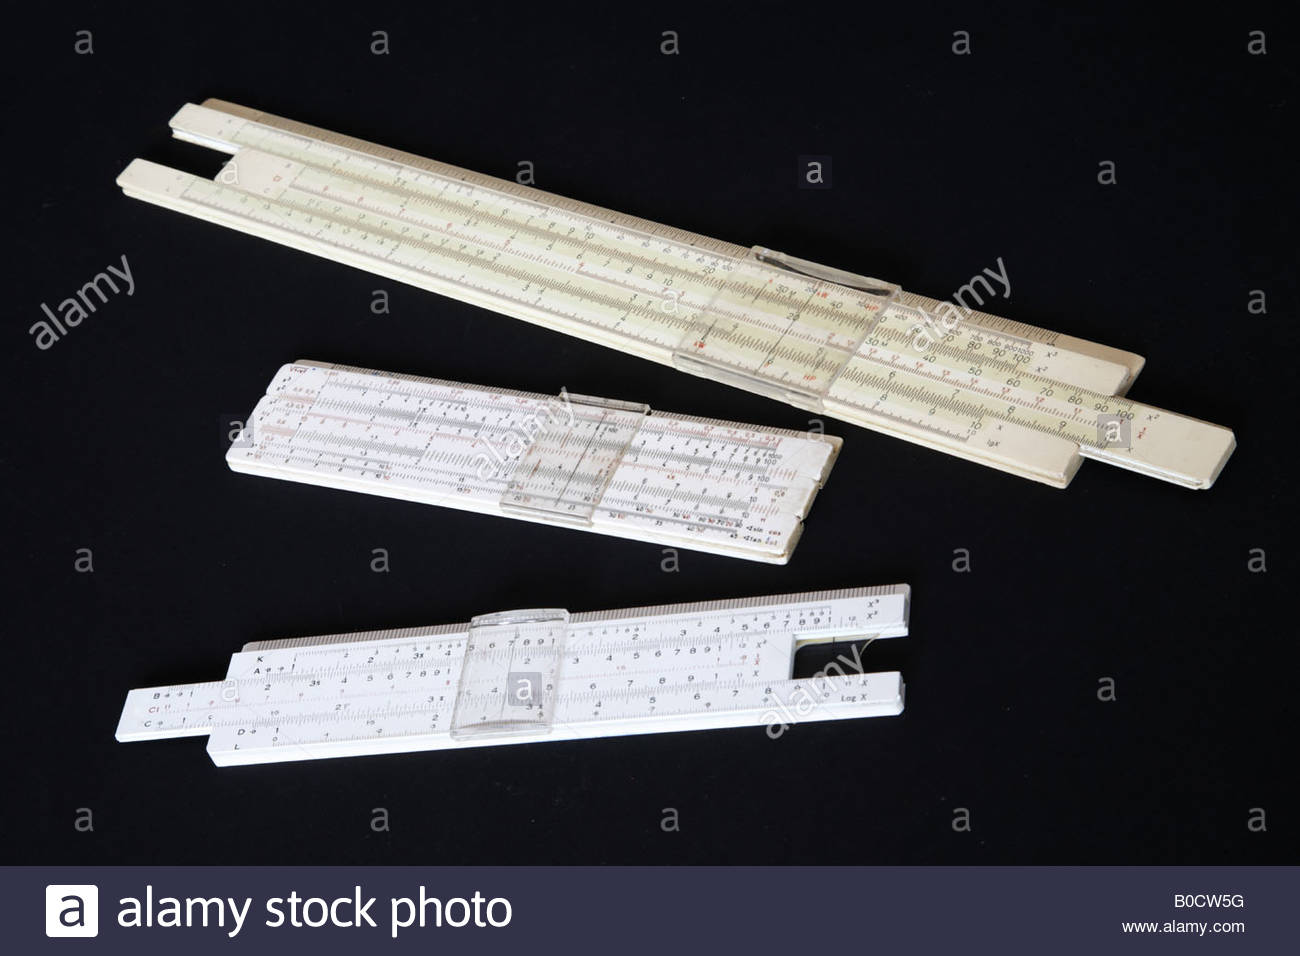 slide rulers against black background - Stock Image